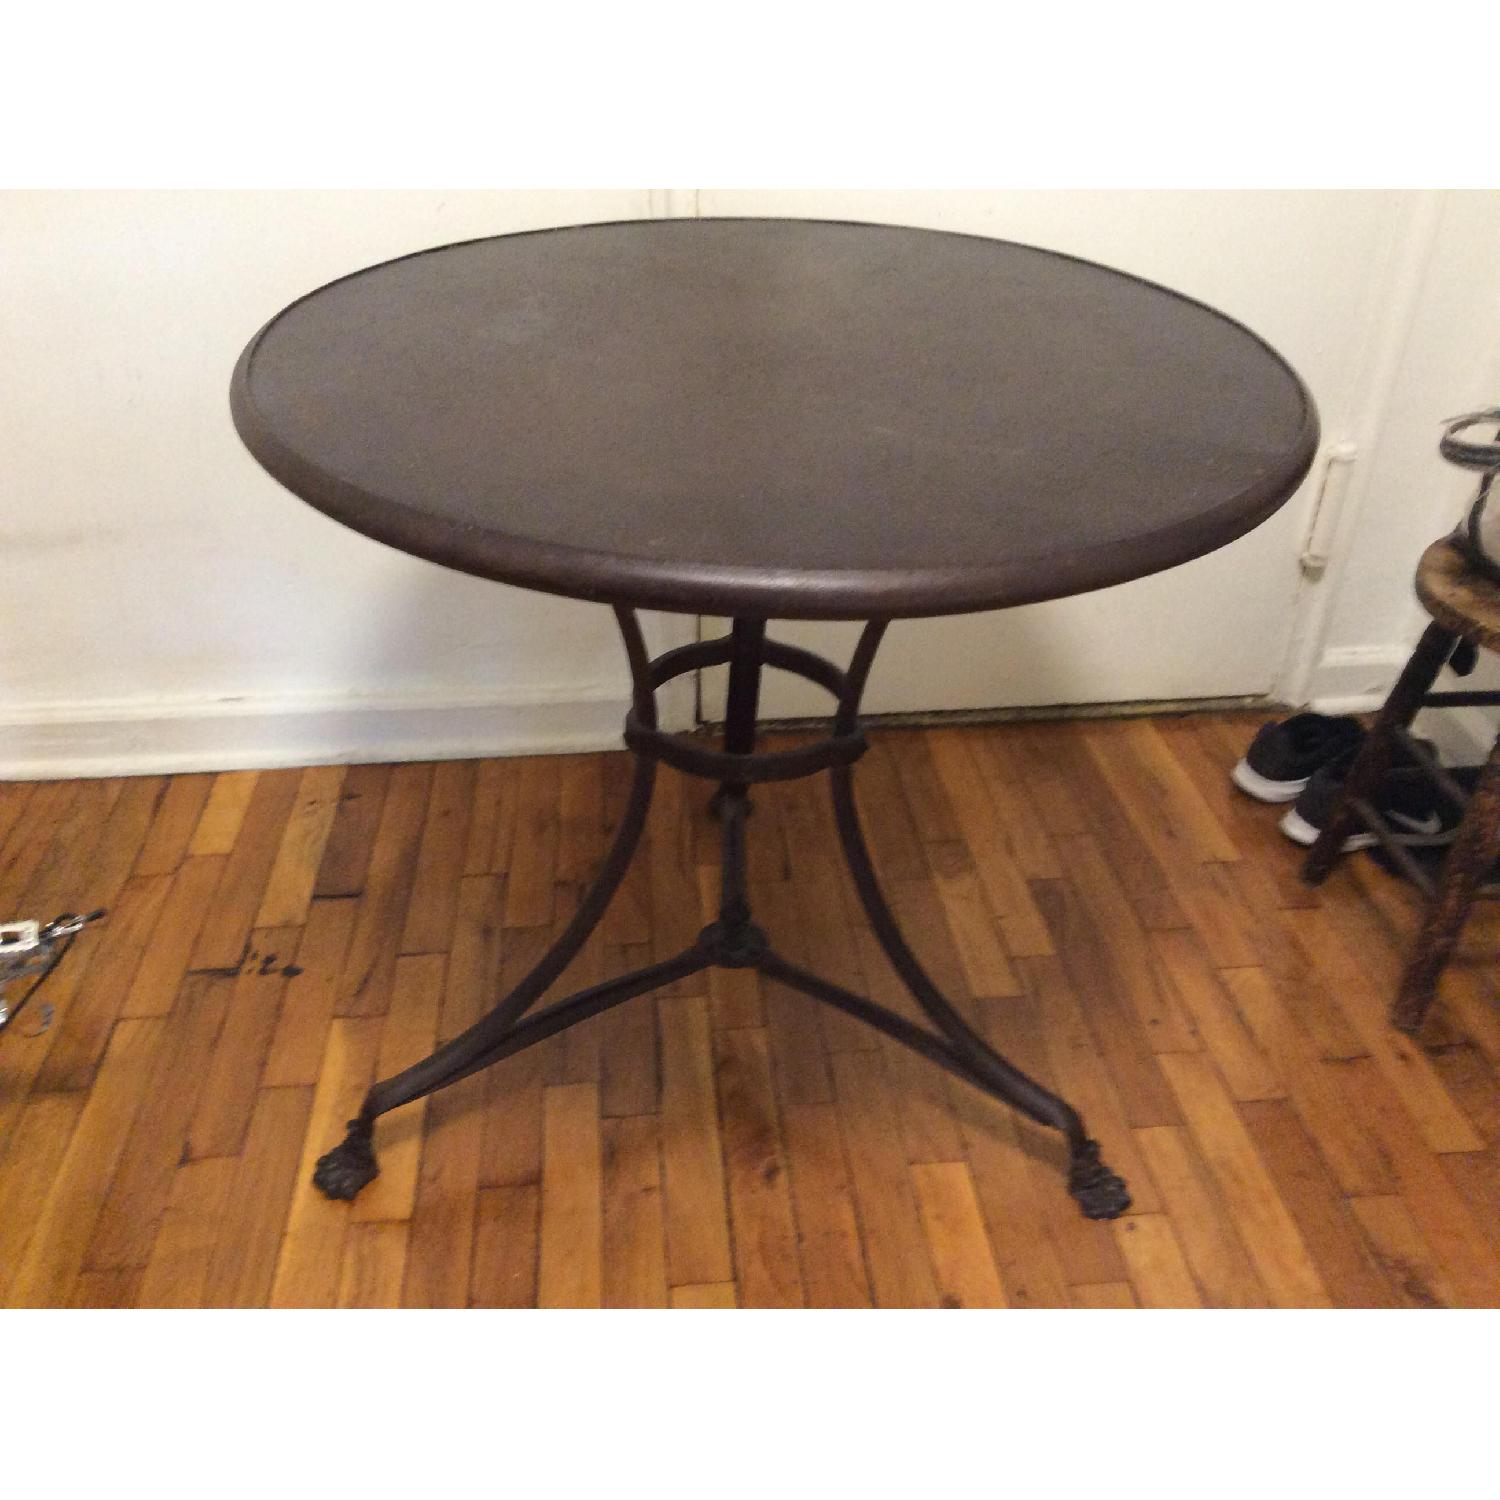 Restoration Hardware French Brasserie Lions Foot Table - image-1